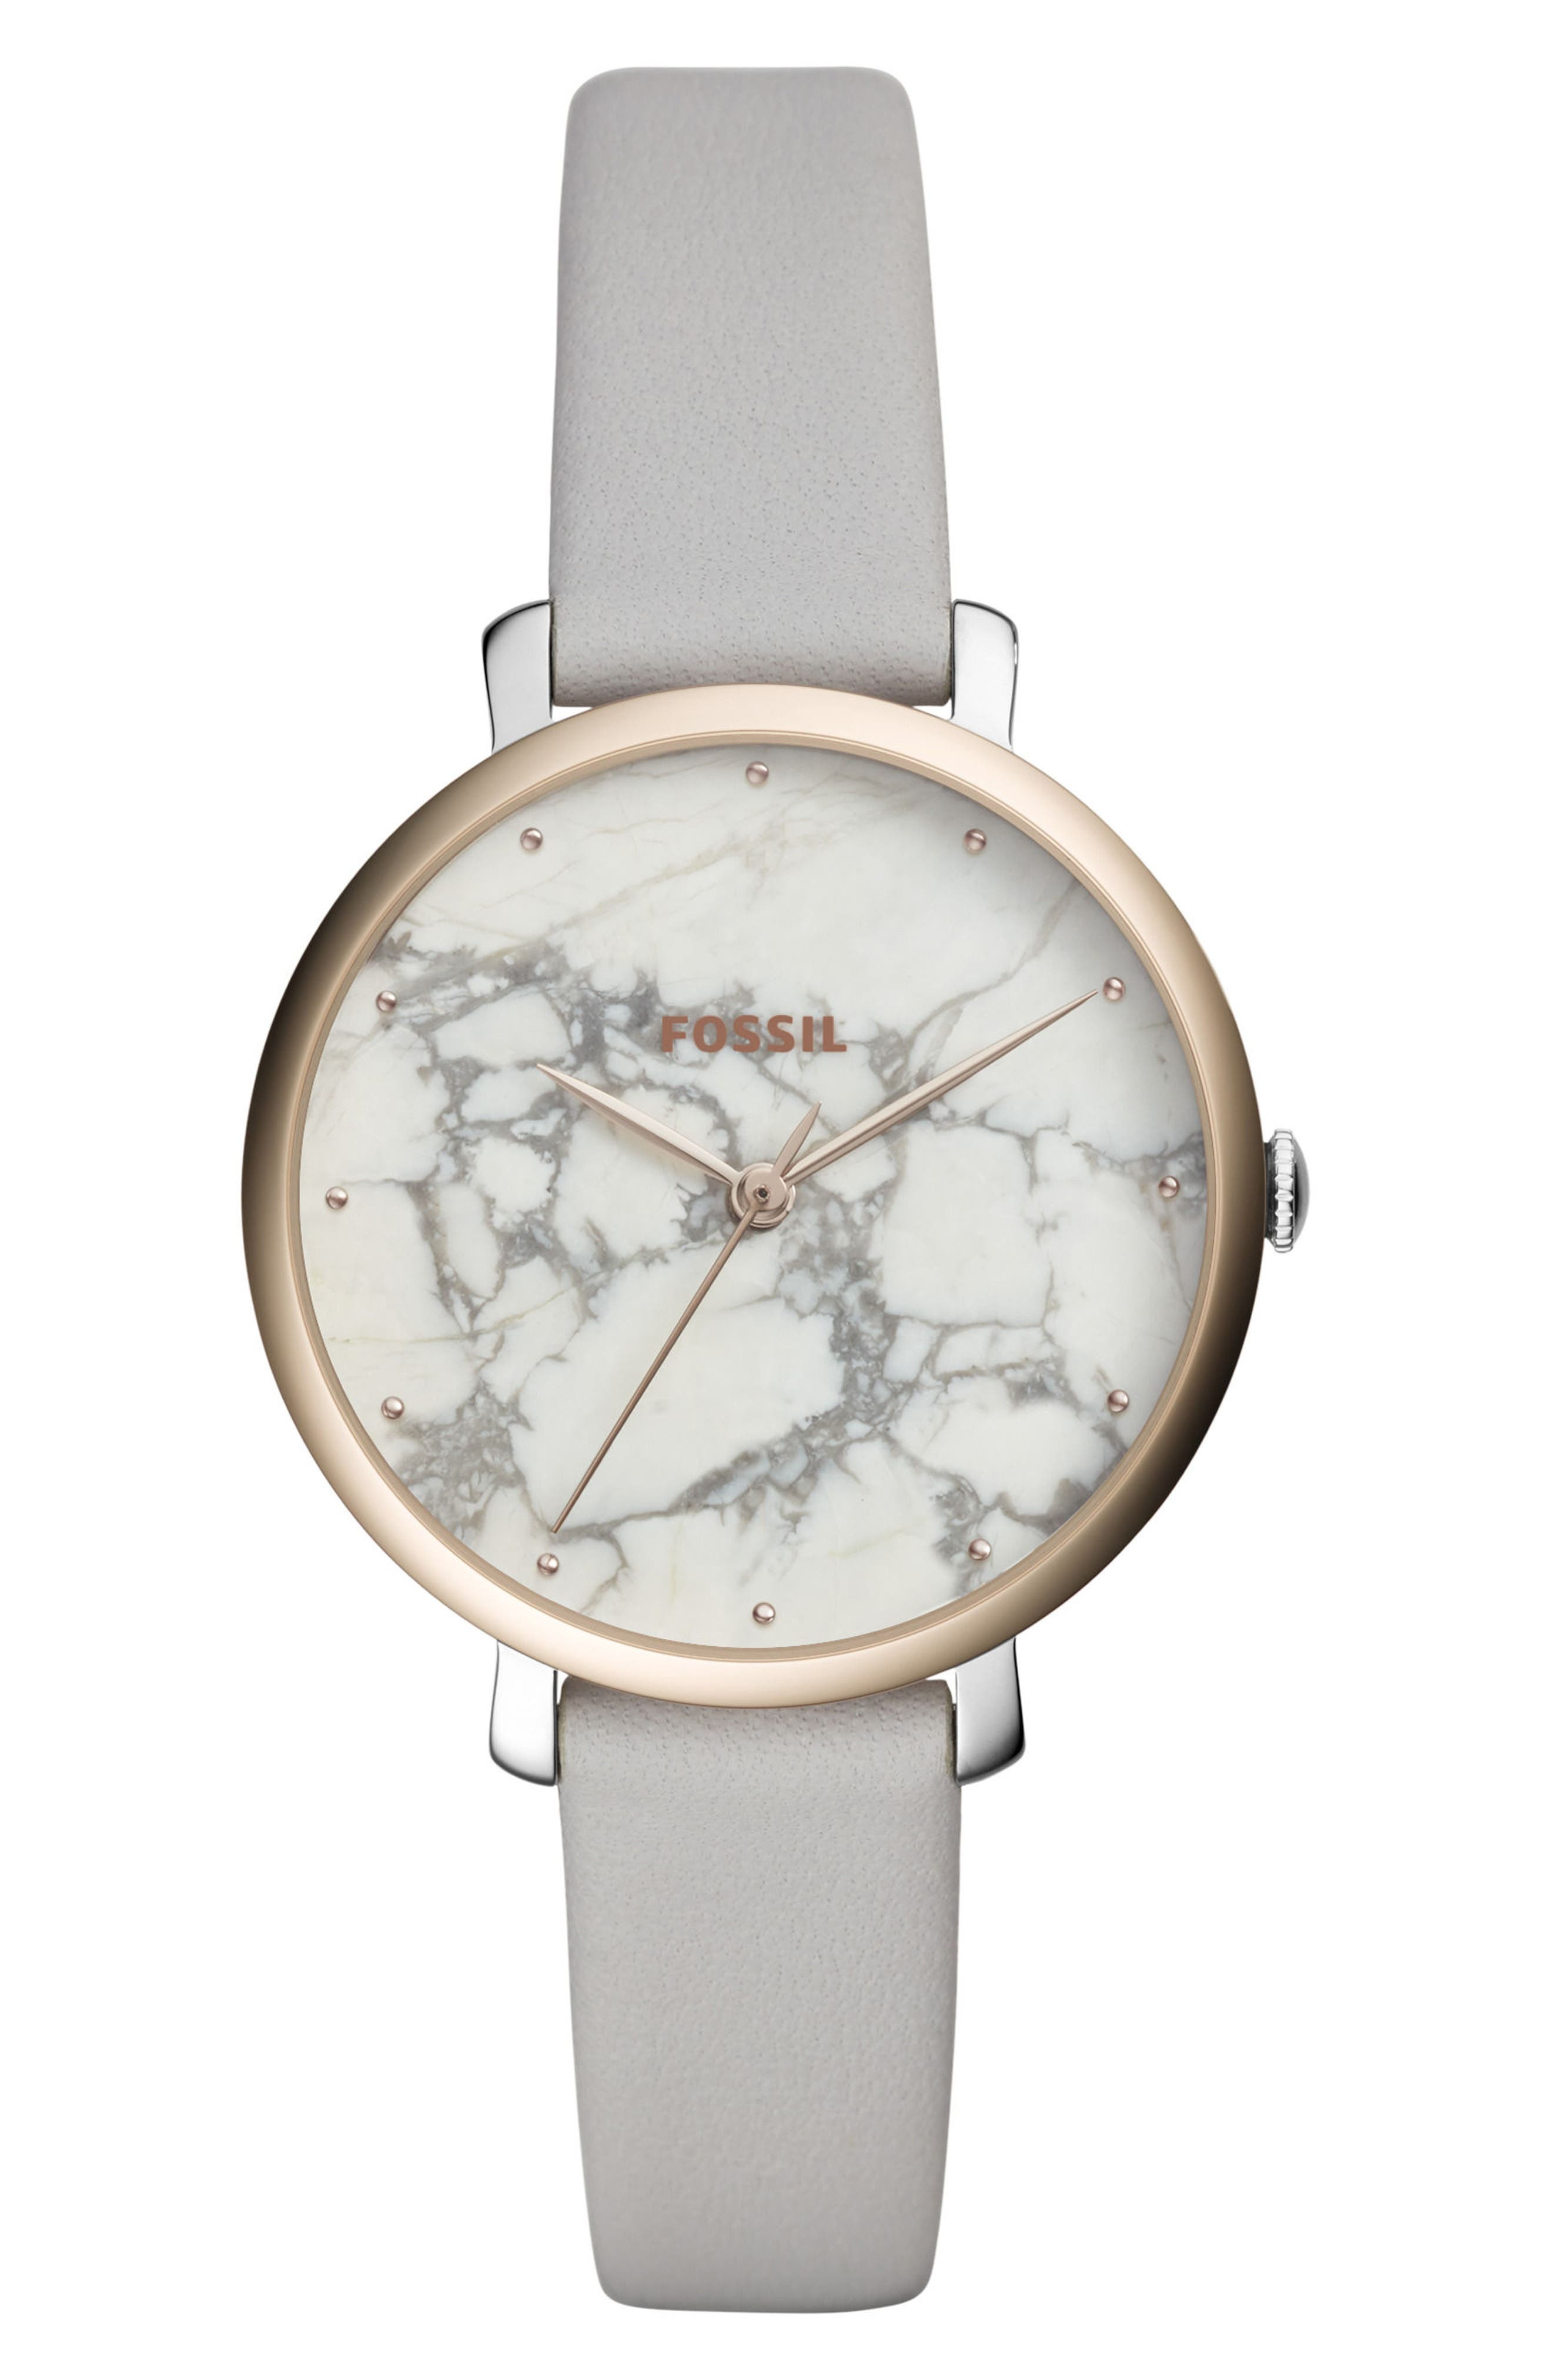 FOSSIL Jacqueline Stone Dial Leather Strap Watch, 36mm, Main, color, GRAY/ WHITE/ SILVER